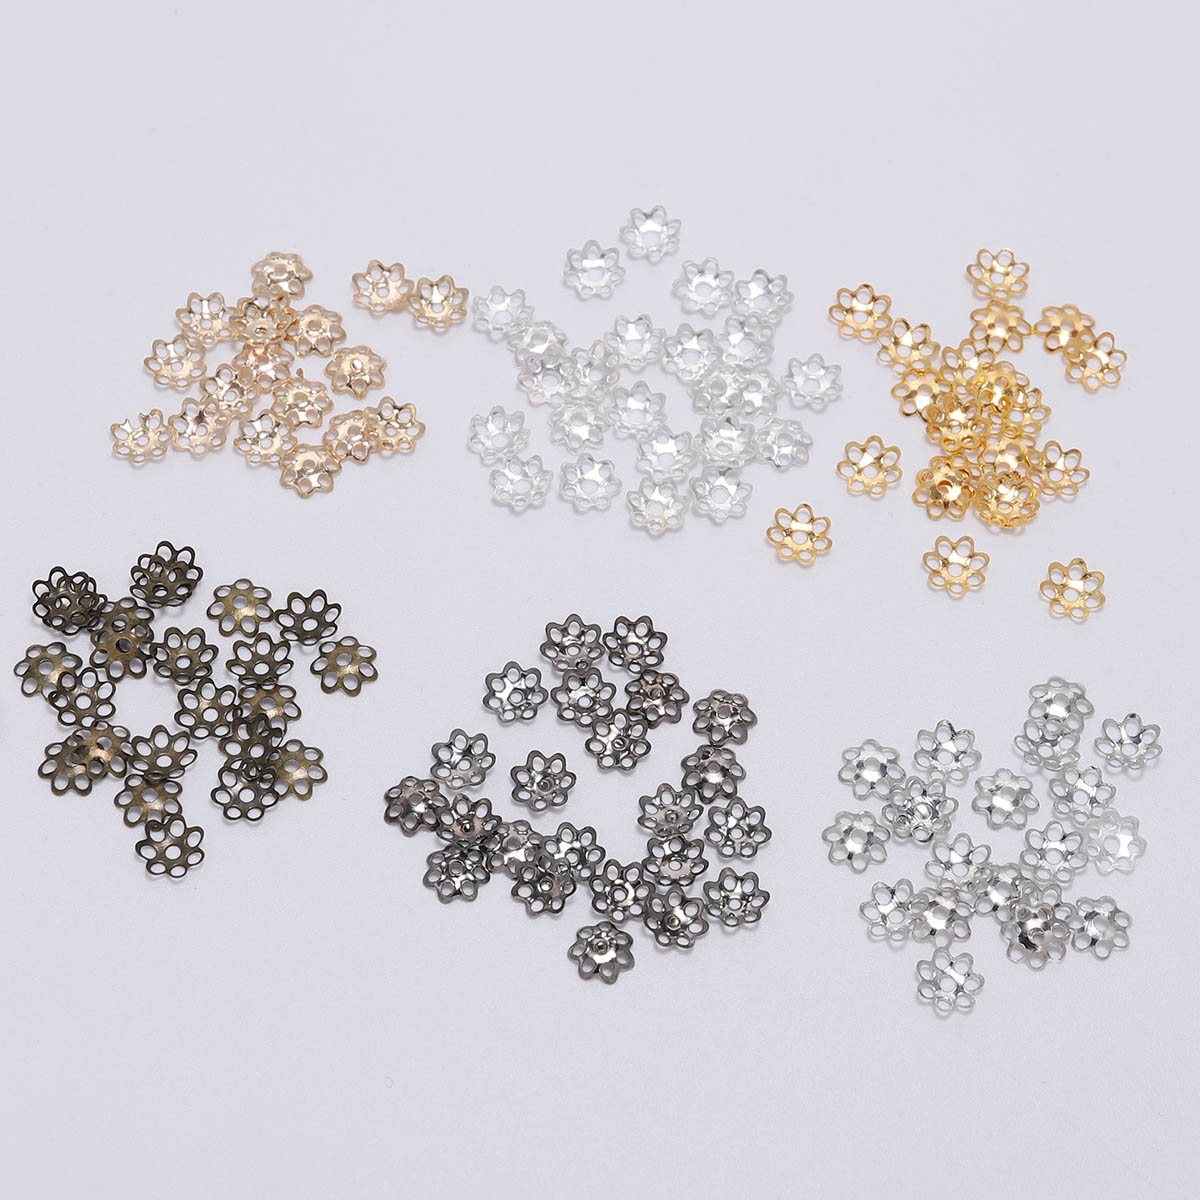 600pcs/Lot 6mm Hollow Flower Metal Filigree Loose Spacer Bead Caps Cone End Filigree For Diy Jewelry Finding Making Supplies